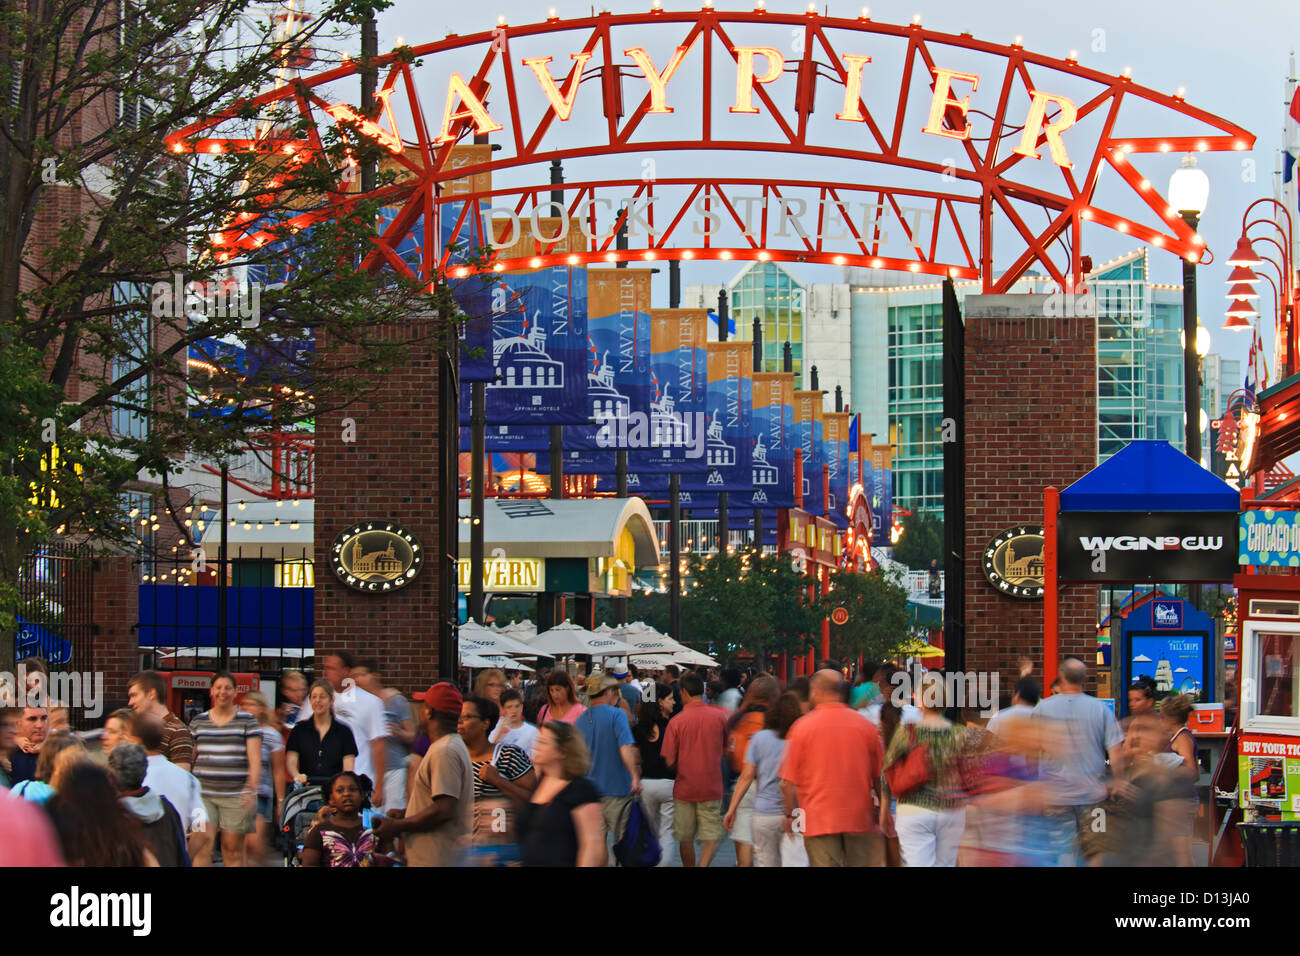 Entrance to Navy Pier, Chicago, Illinois USA - Stock Image